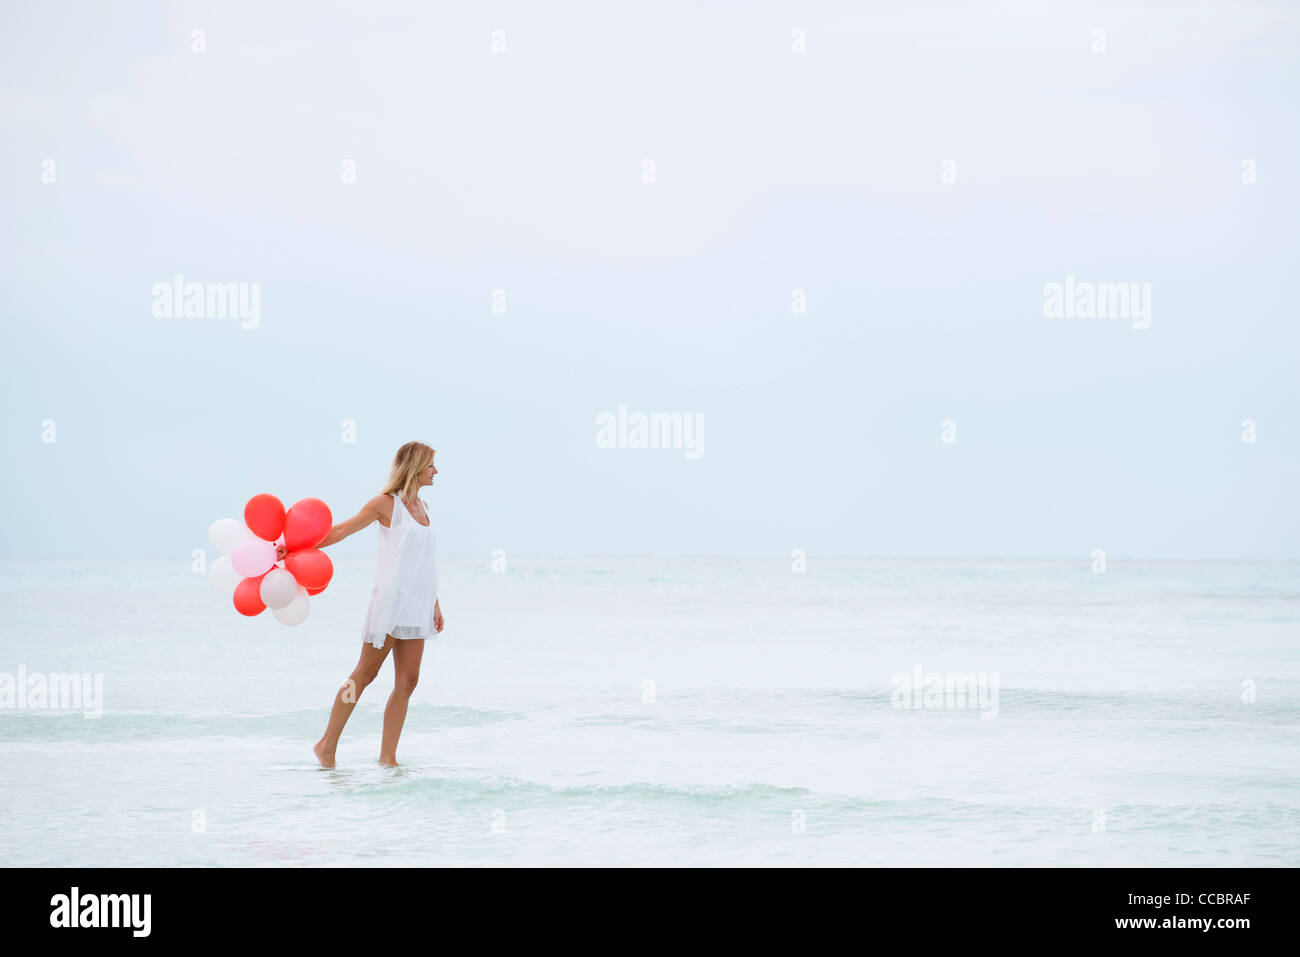 Woman walking on water, carrying bunch of balloons - Stock Image